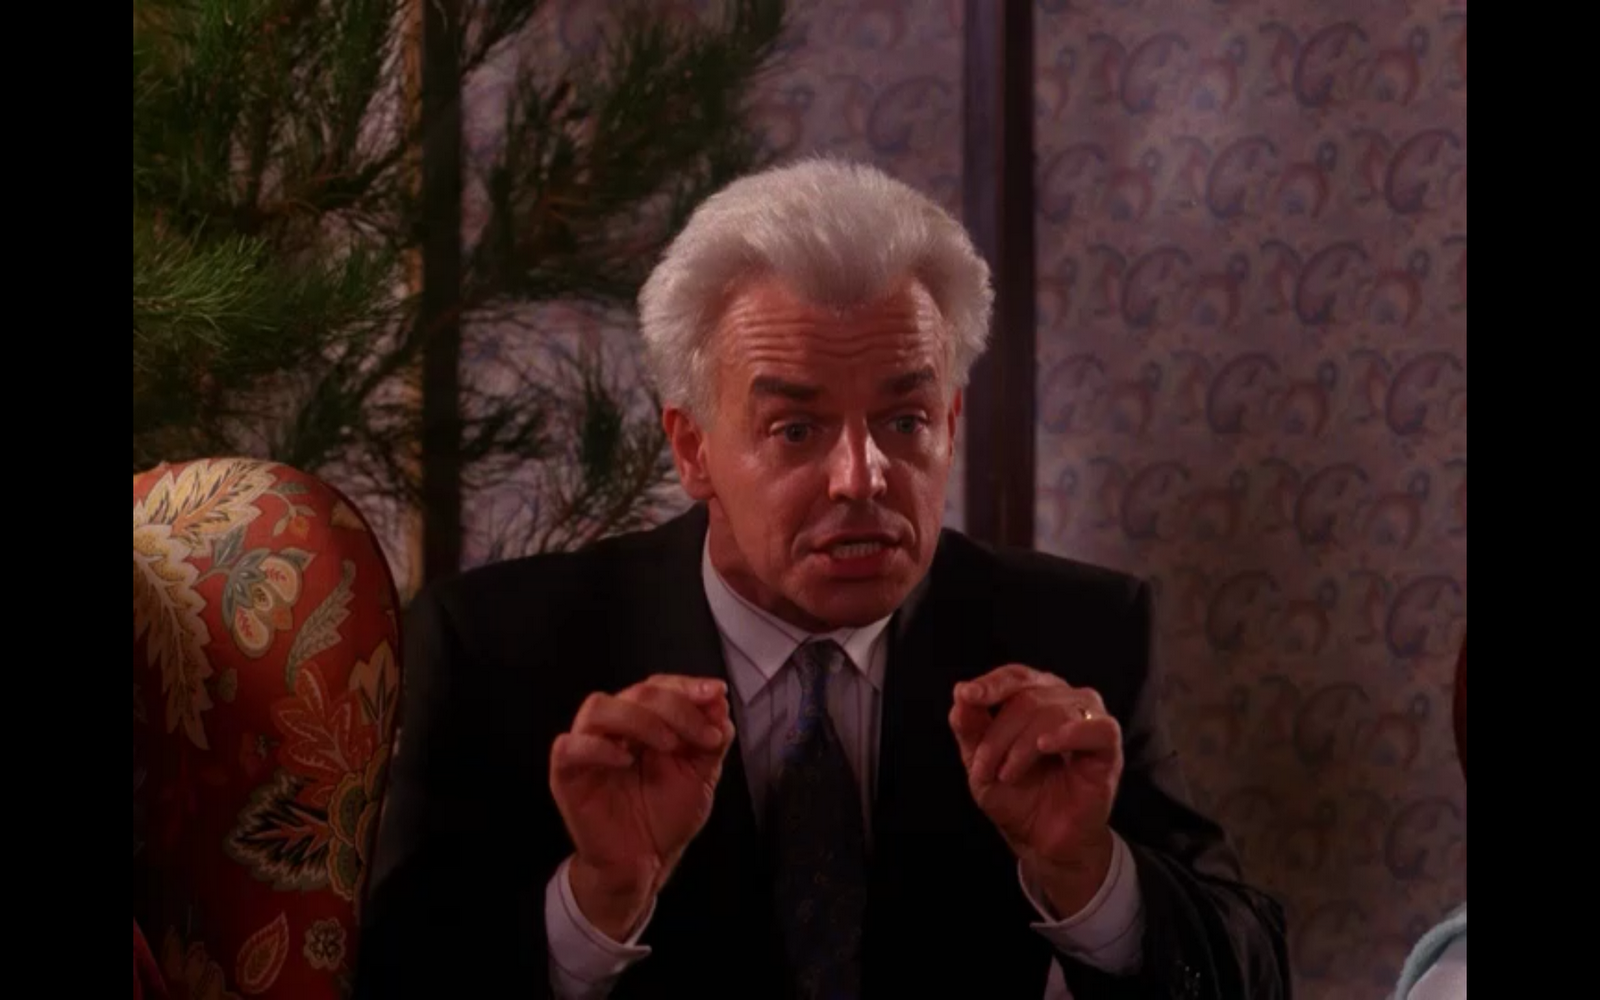 Life Between Frames: Film (TV) Appreciation - The Black Lodge